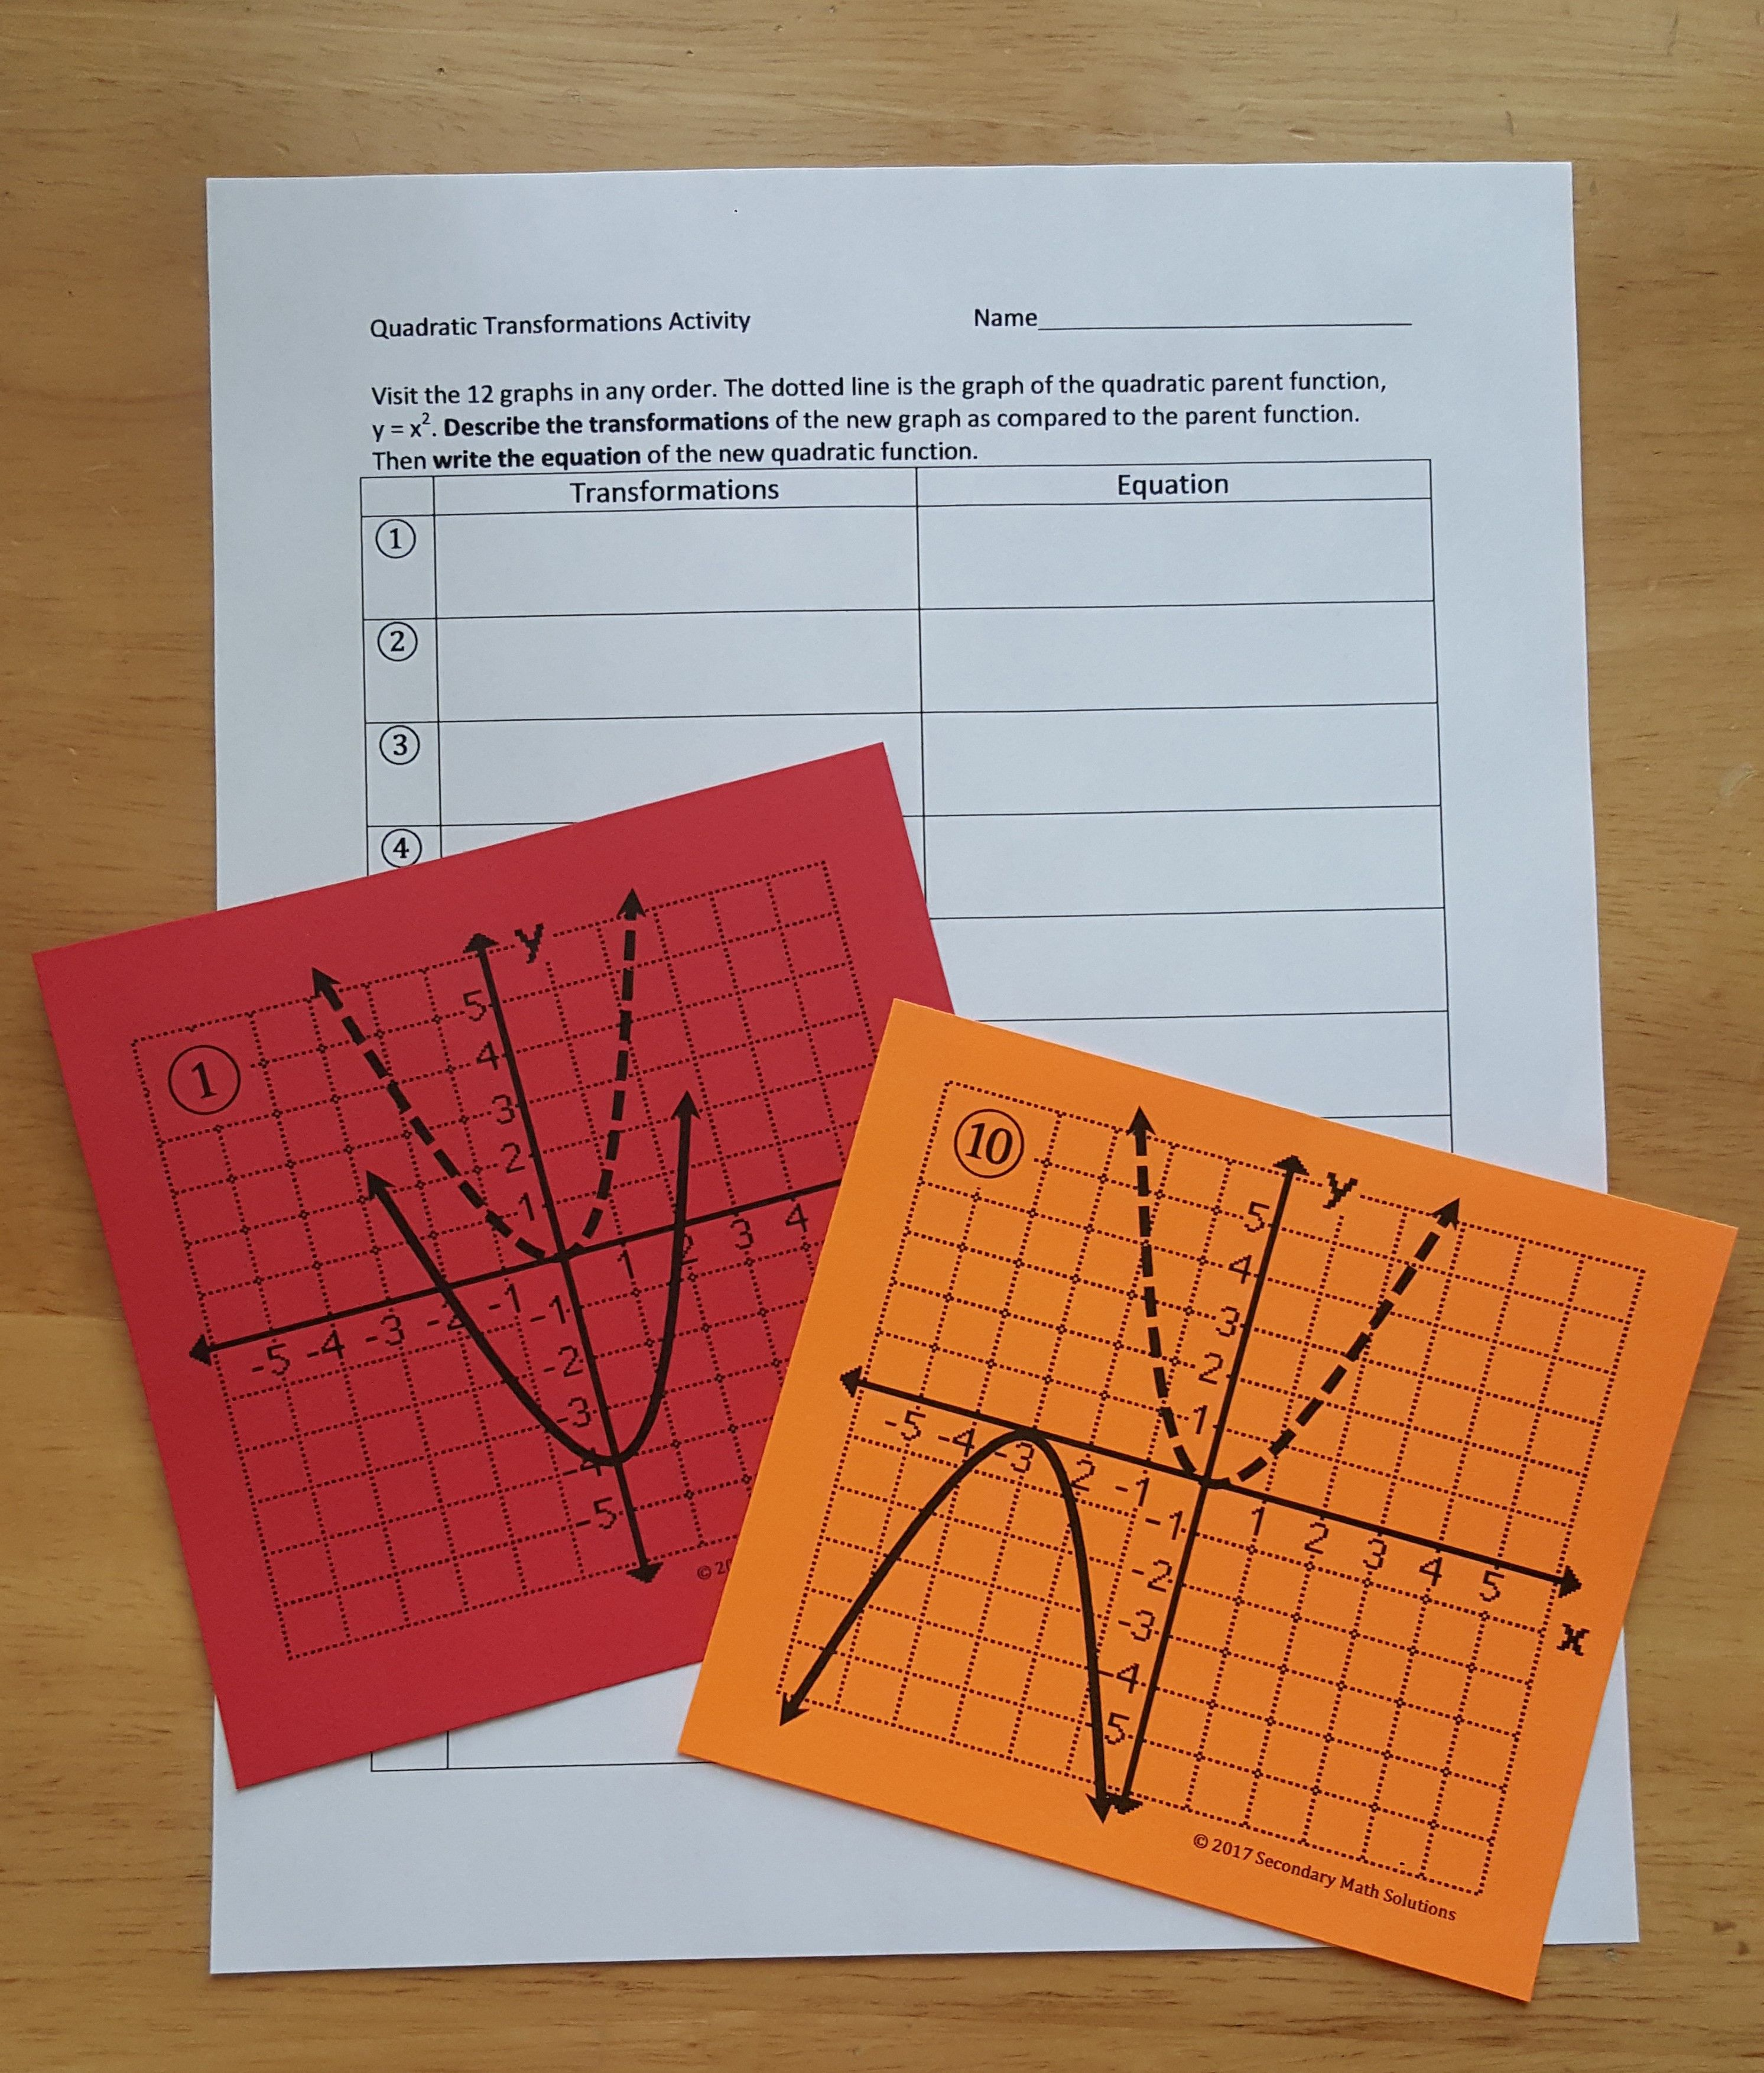 Quadratic Transformations Activity A7c